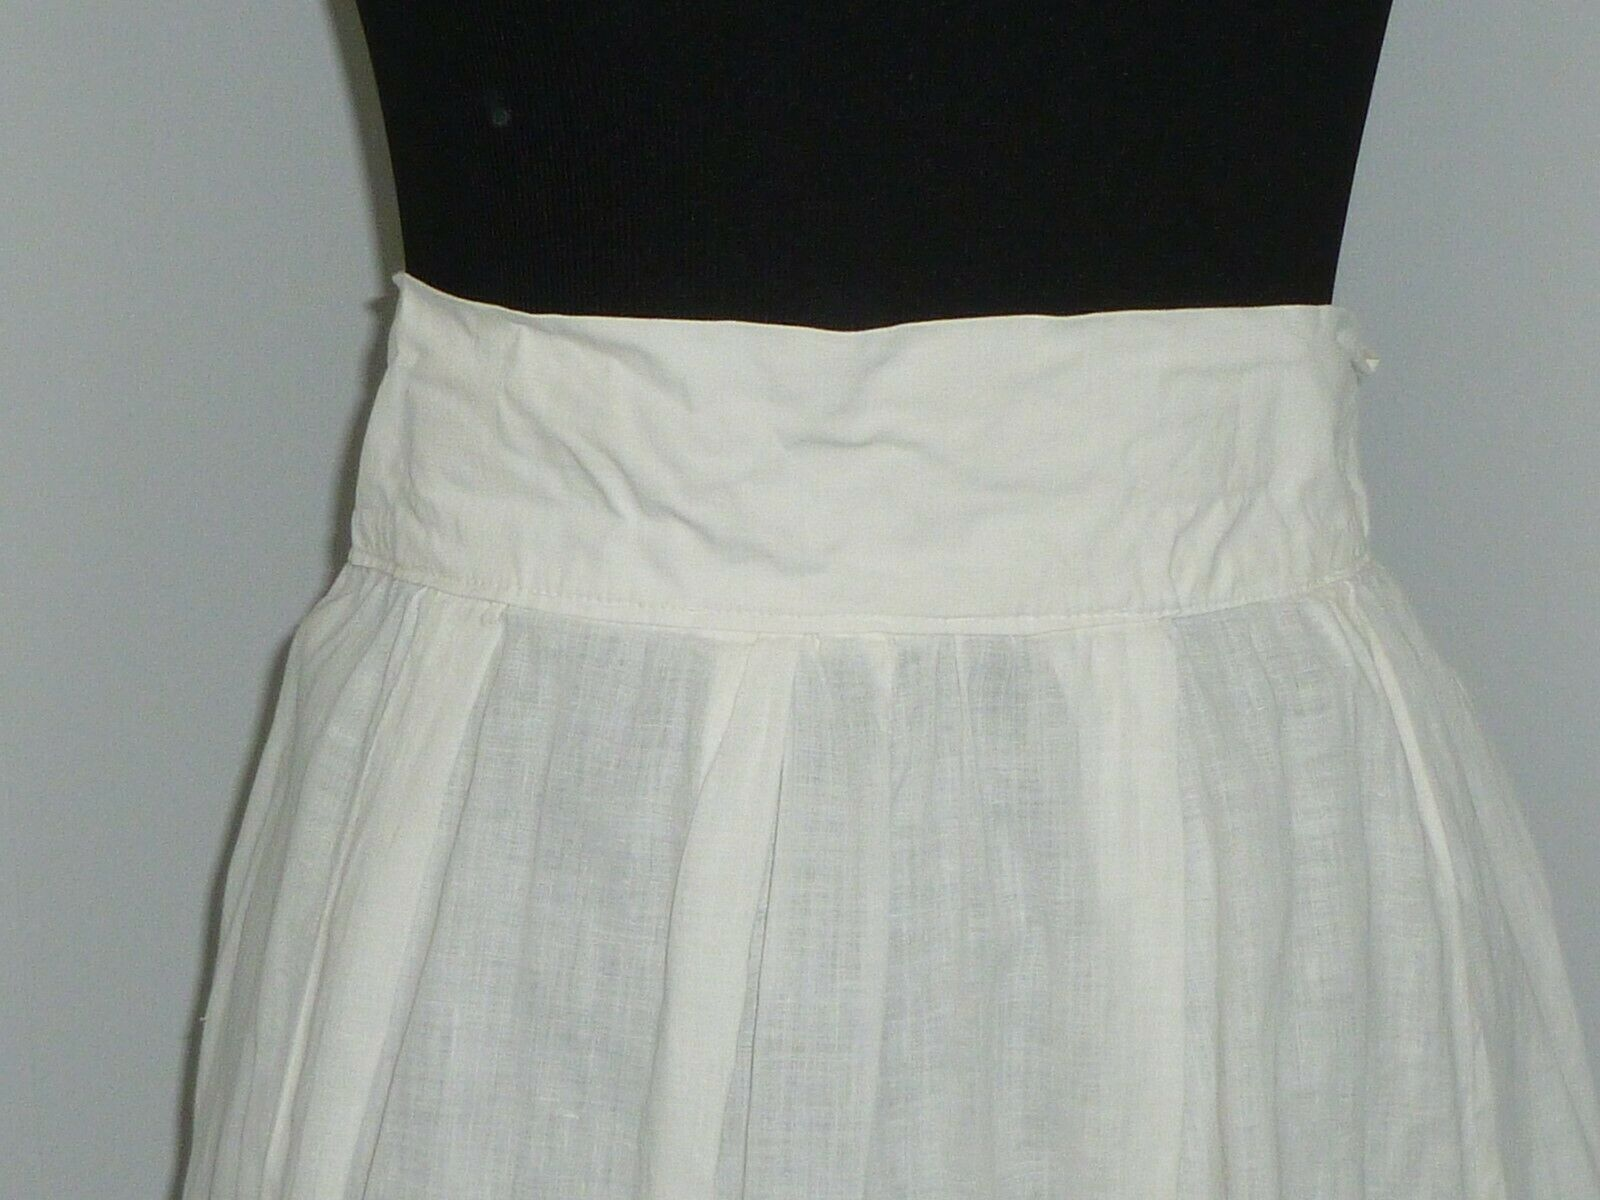 Antique LINEN Skirt~Embroidered Eyelet Lace Petti… - image 2